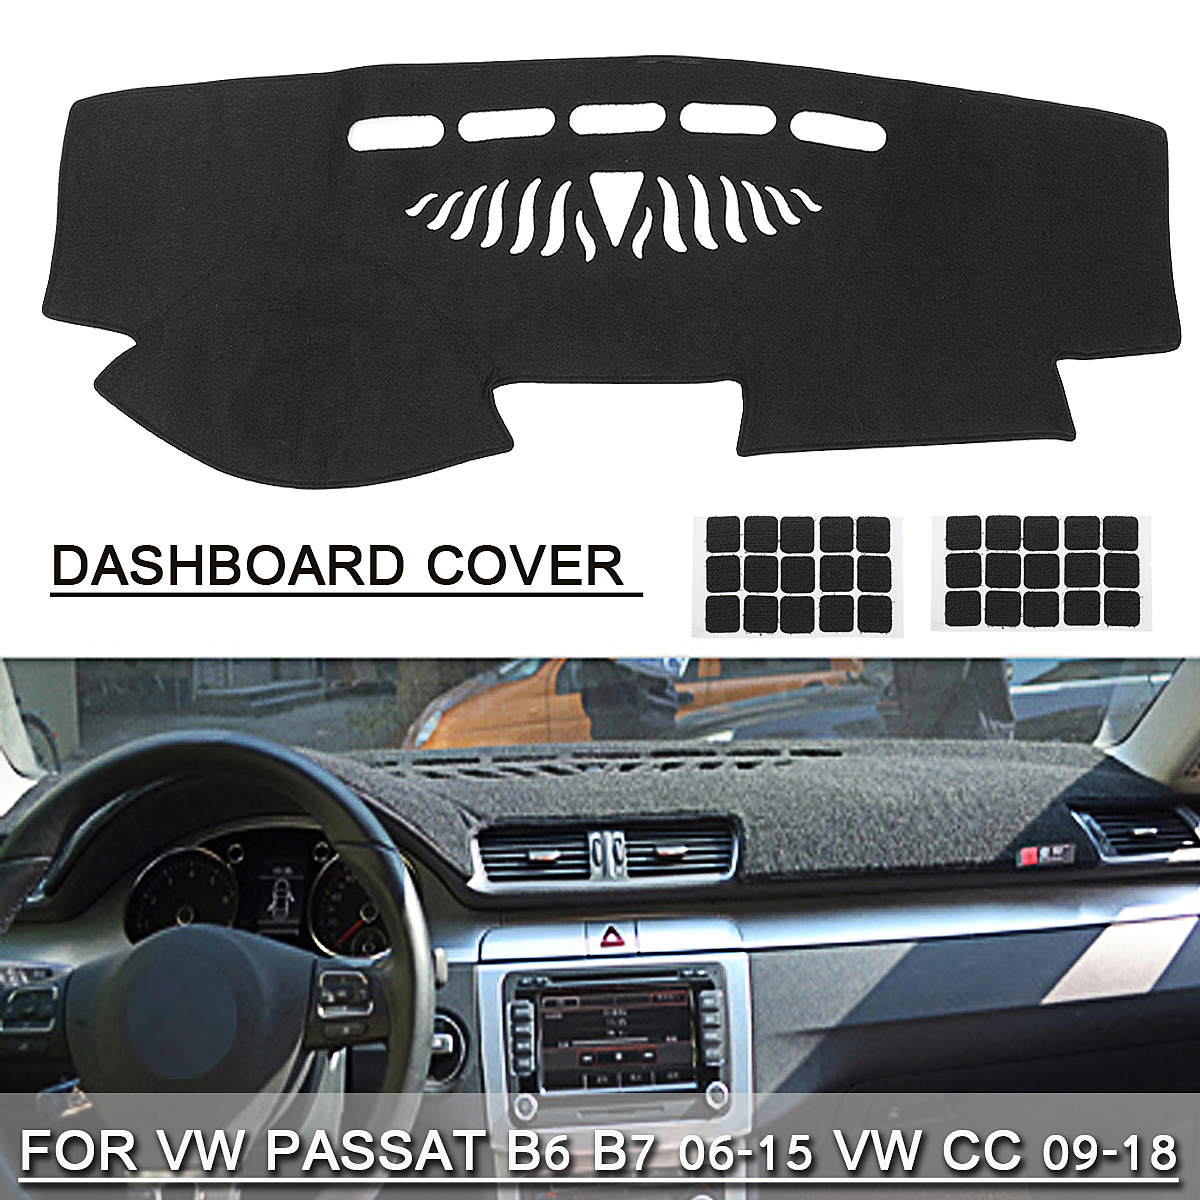 Car DashBoard Cover Mat Carpet Pad Dash Board Avoid Light Mat Black for Volkswagen VW Passat B6 B7 2006-2015 Passat CC 2009-2017 for opel astra k vauxhall holden astra 2009 2015 leather dashmat dashboard cover car pad dash mat sunshade carpet cover car